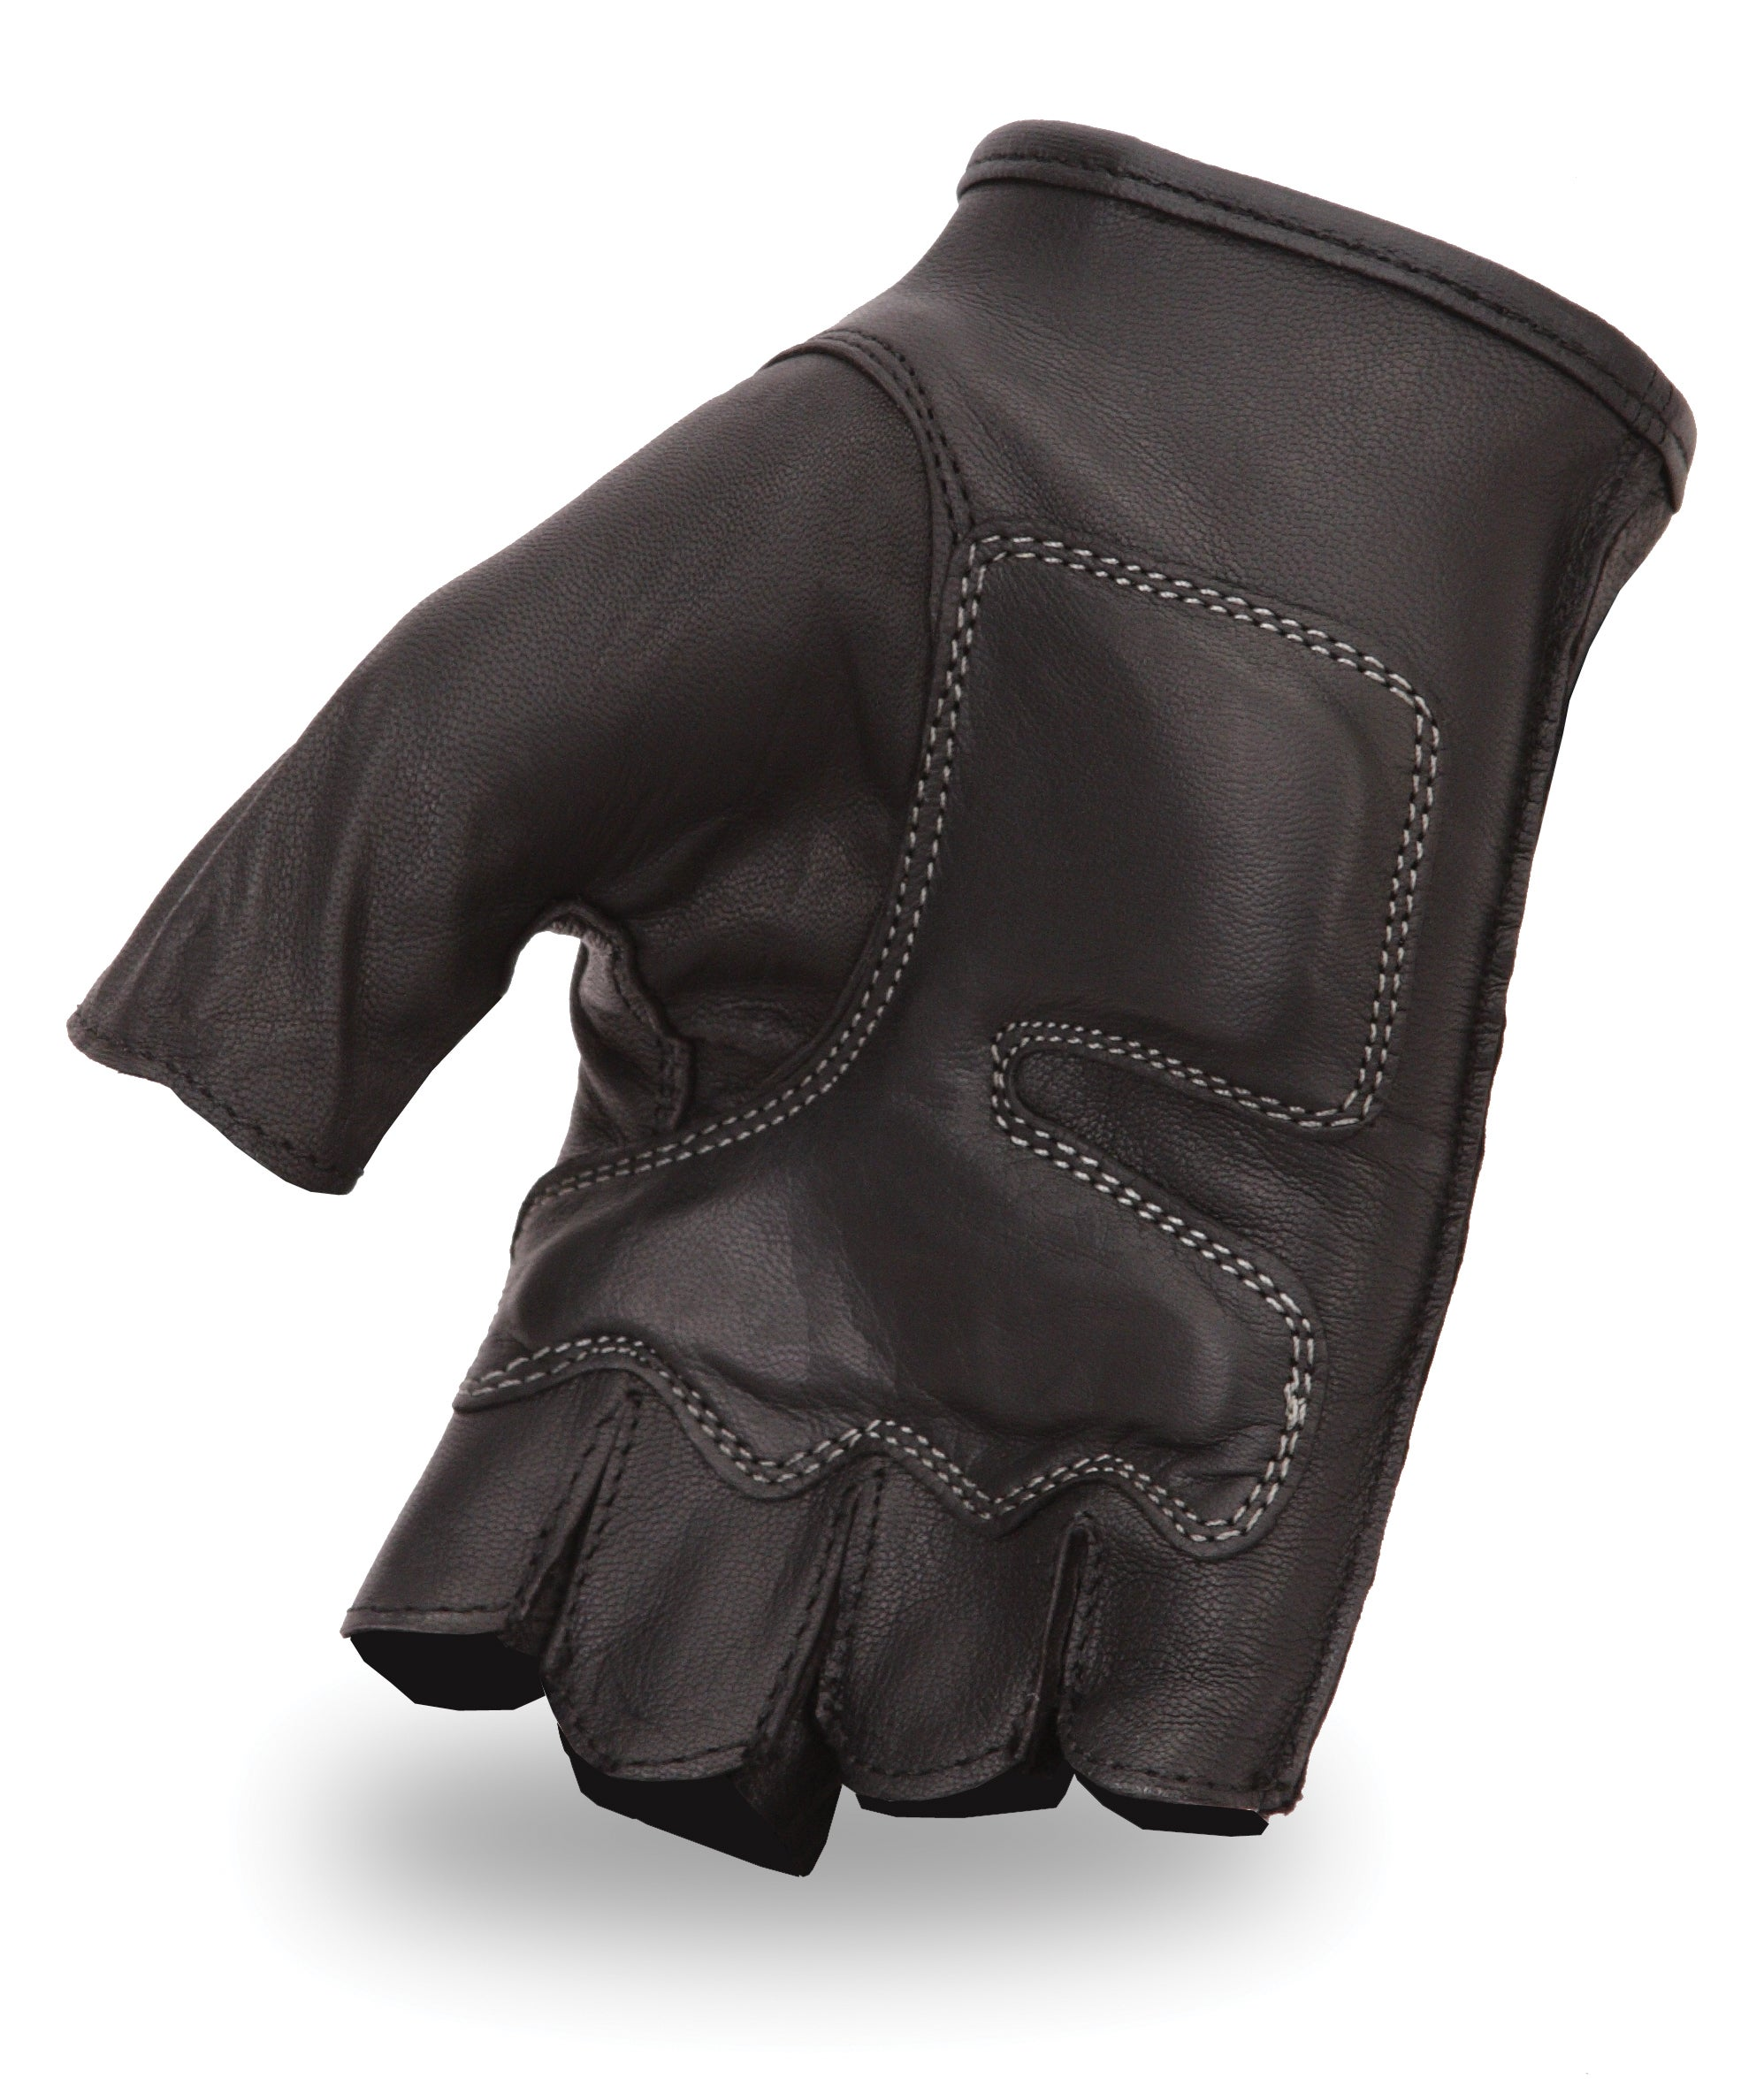 Fingerless leather gloves mens accessories - First Classics Men 039 S Embroidered Fingerless Leather